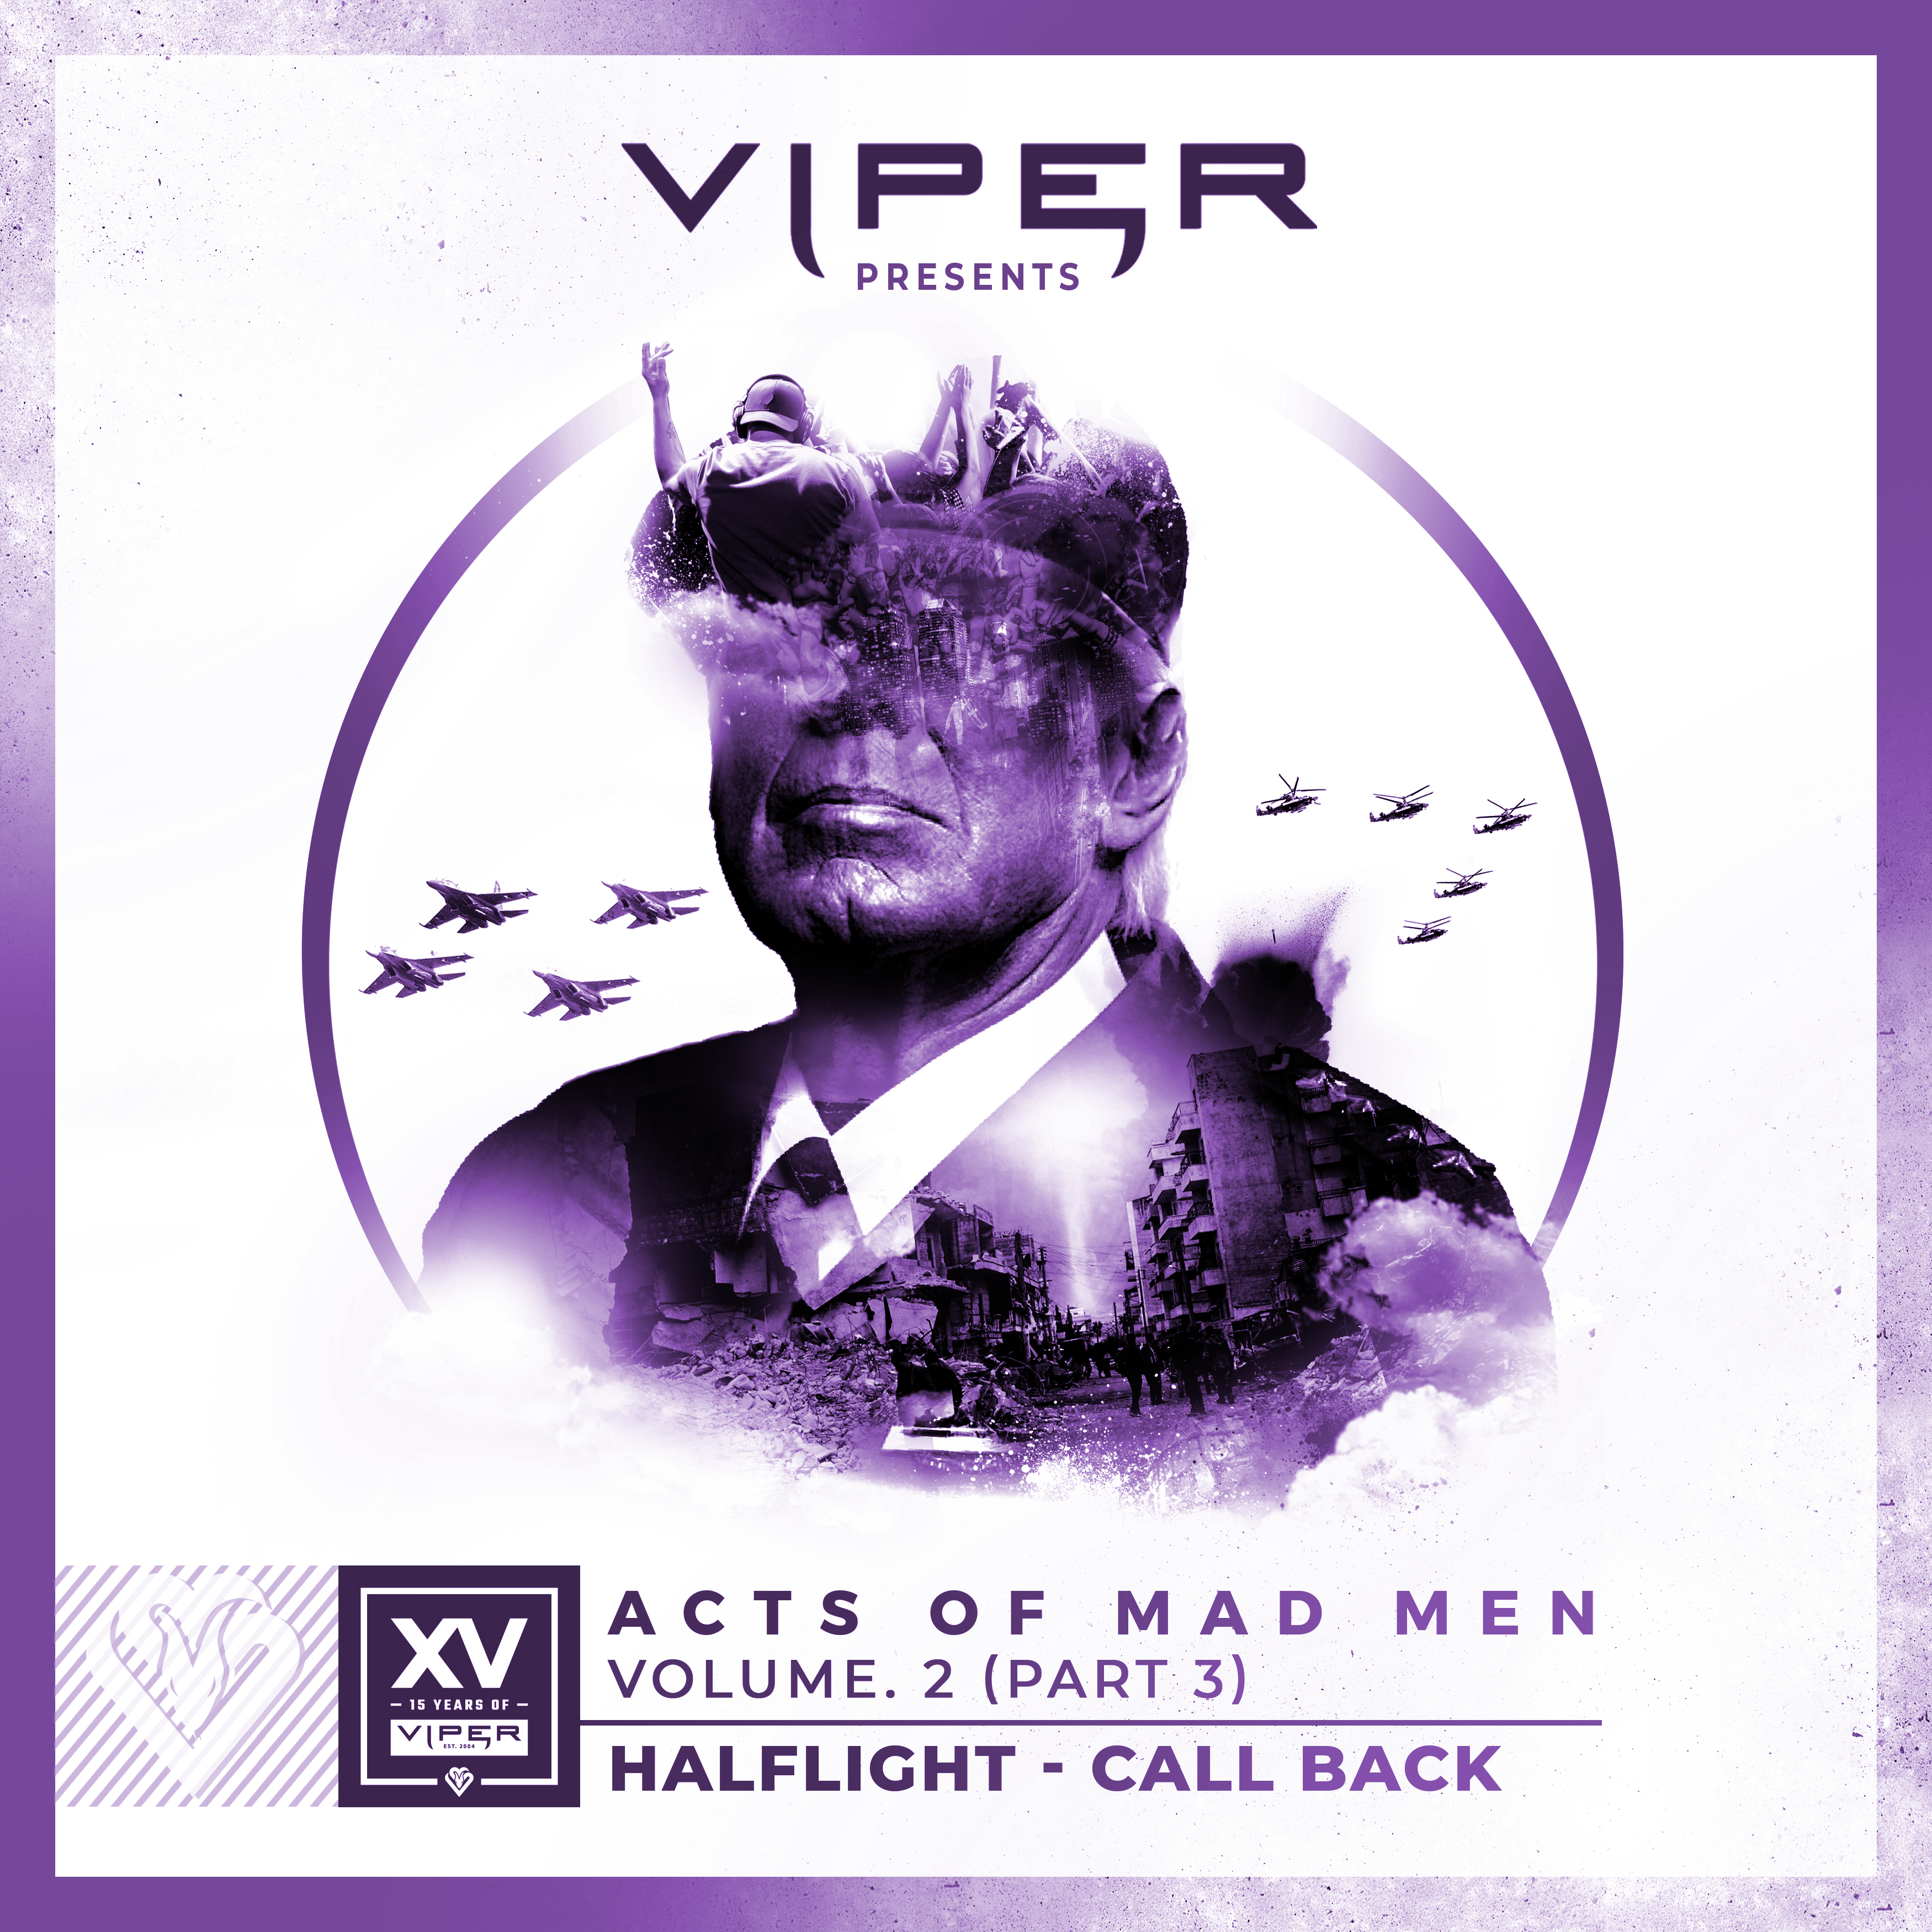 Halflight - Call Back (Acts of Mad Men Vol. 2 Part 3)